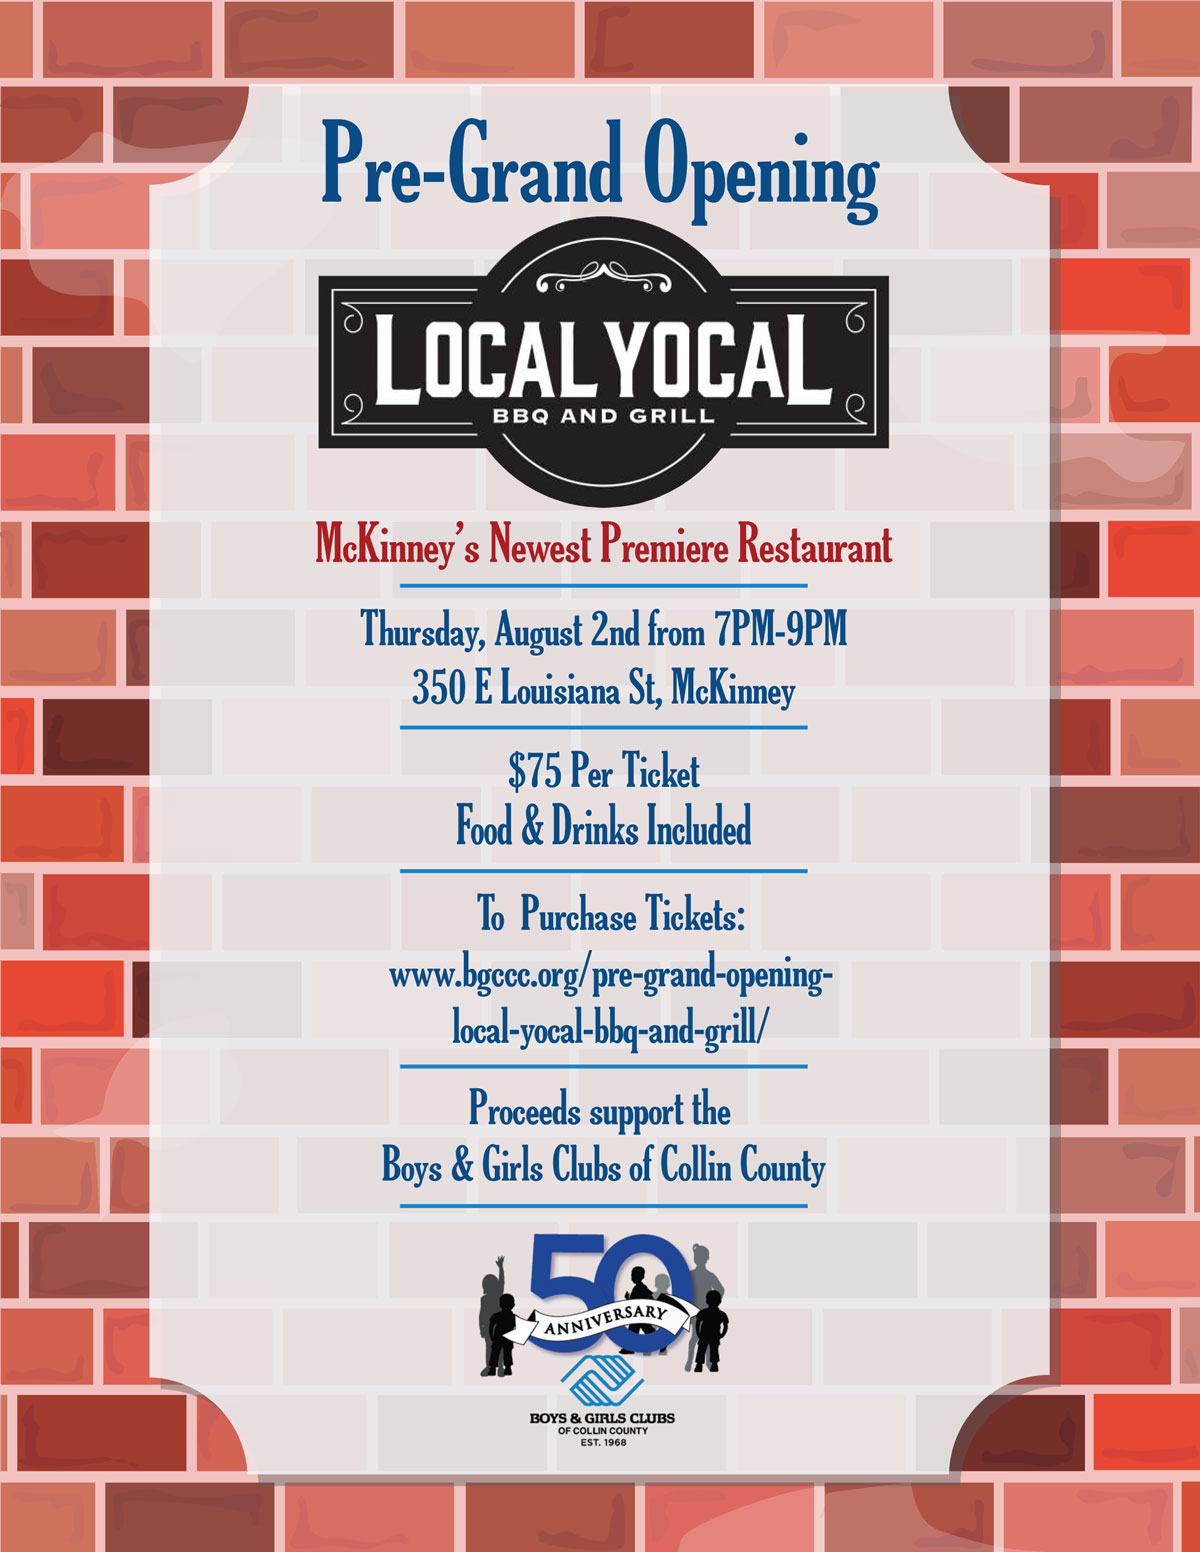 Local Yocal Fundraiser Night - Pre-Grand Opening